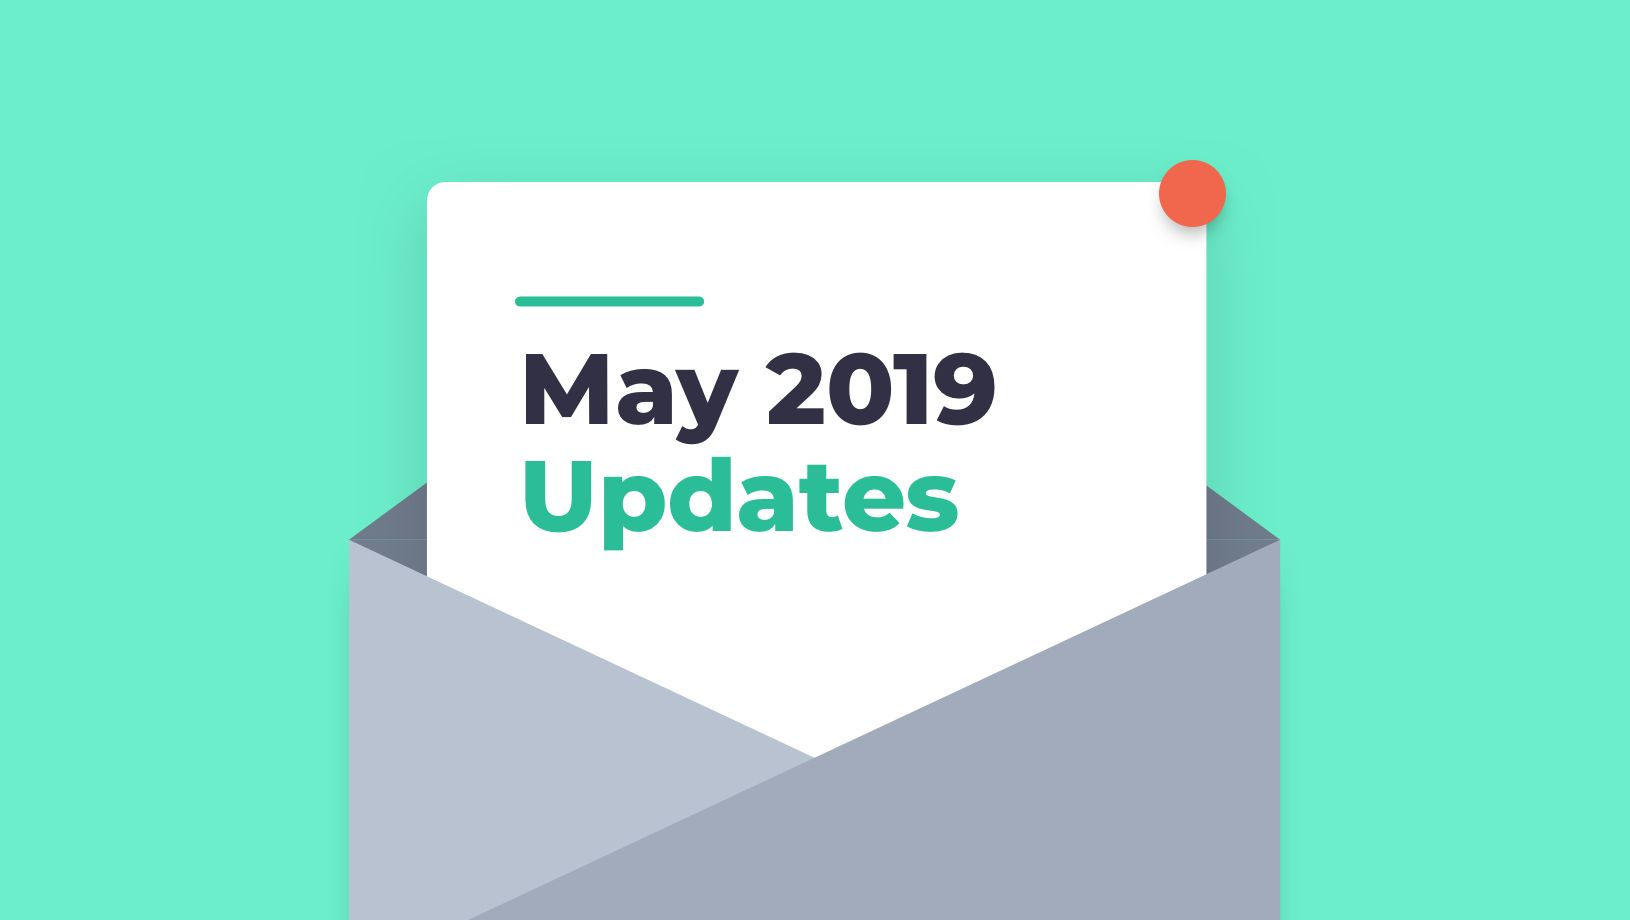 May '19 Updates